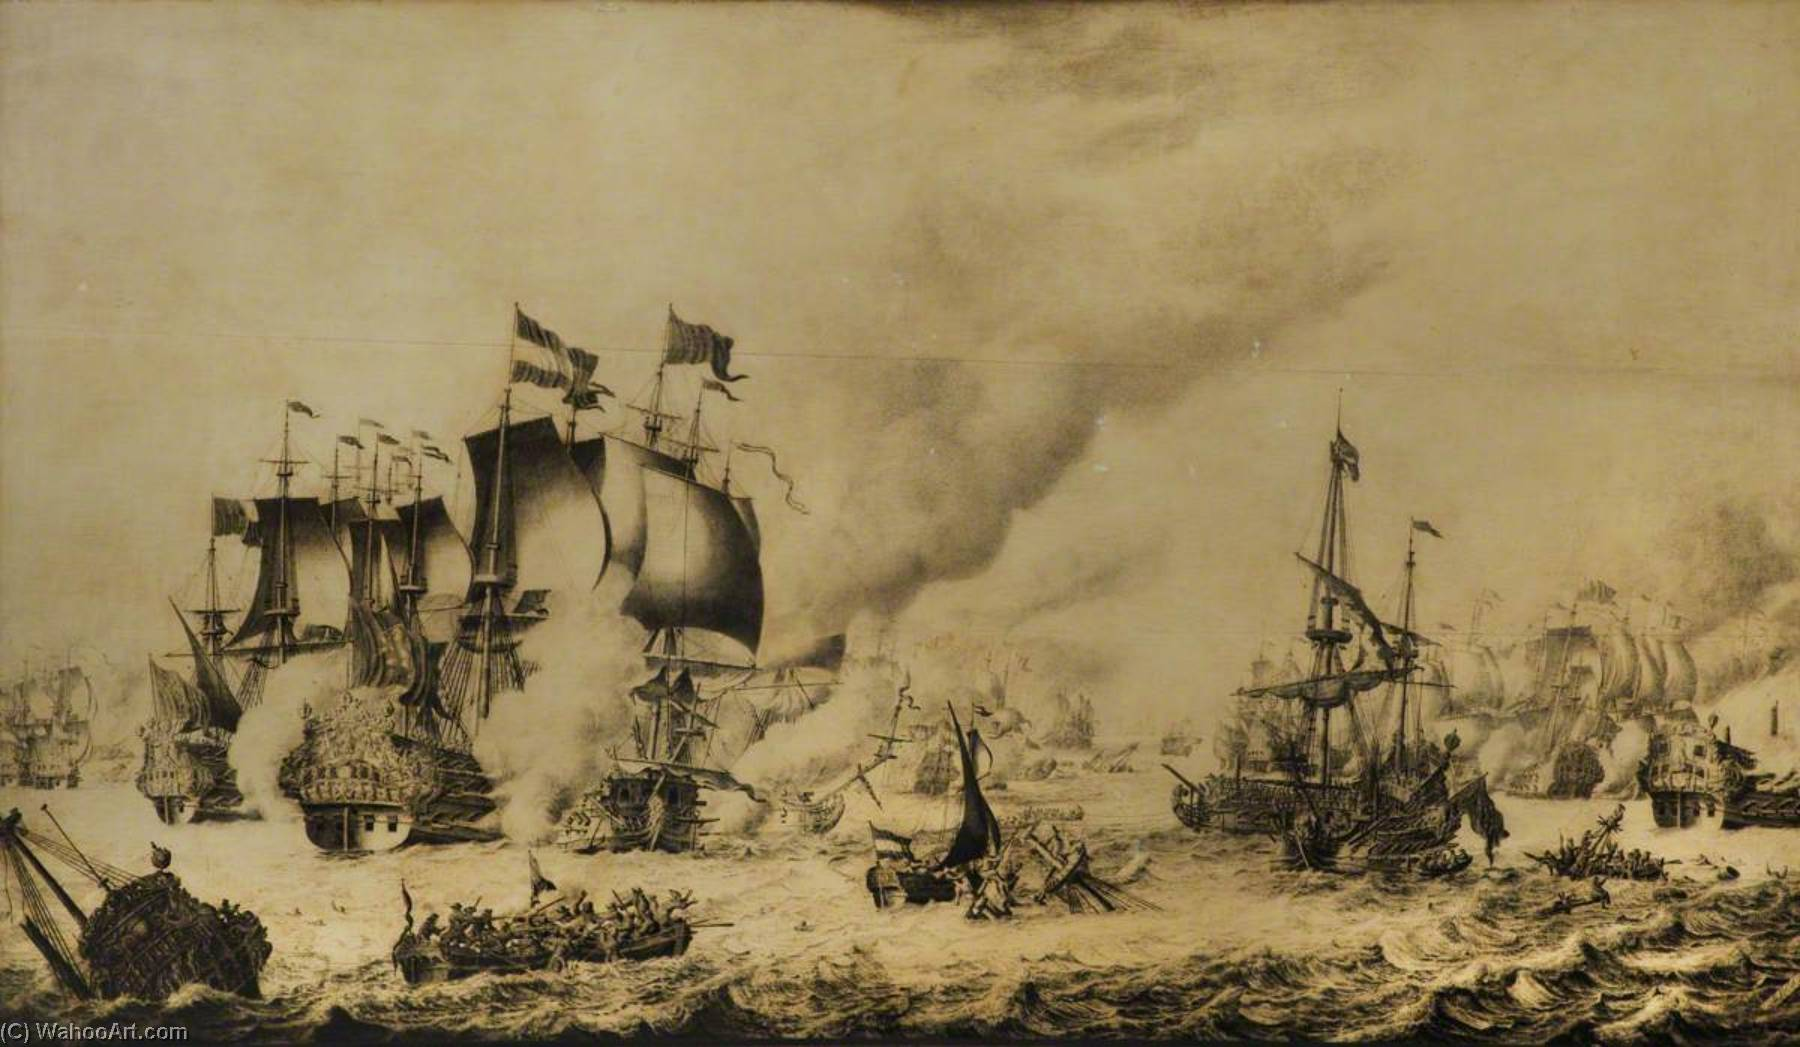 The Battle of Barfleur, 19 May 1692 by Adriaen Van Salm | Art Reproduction | WahooArt.com